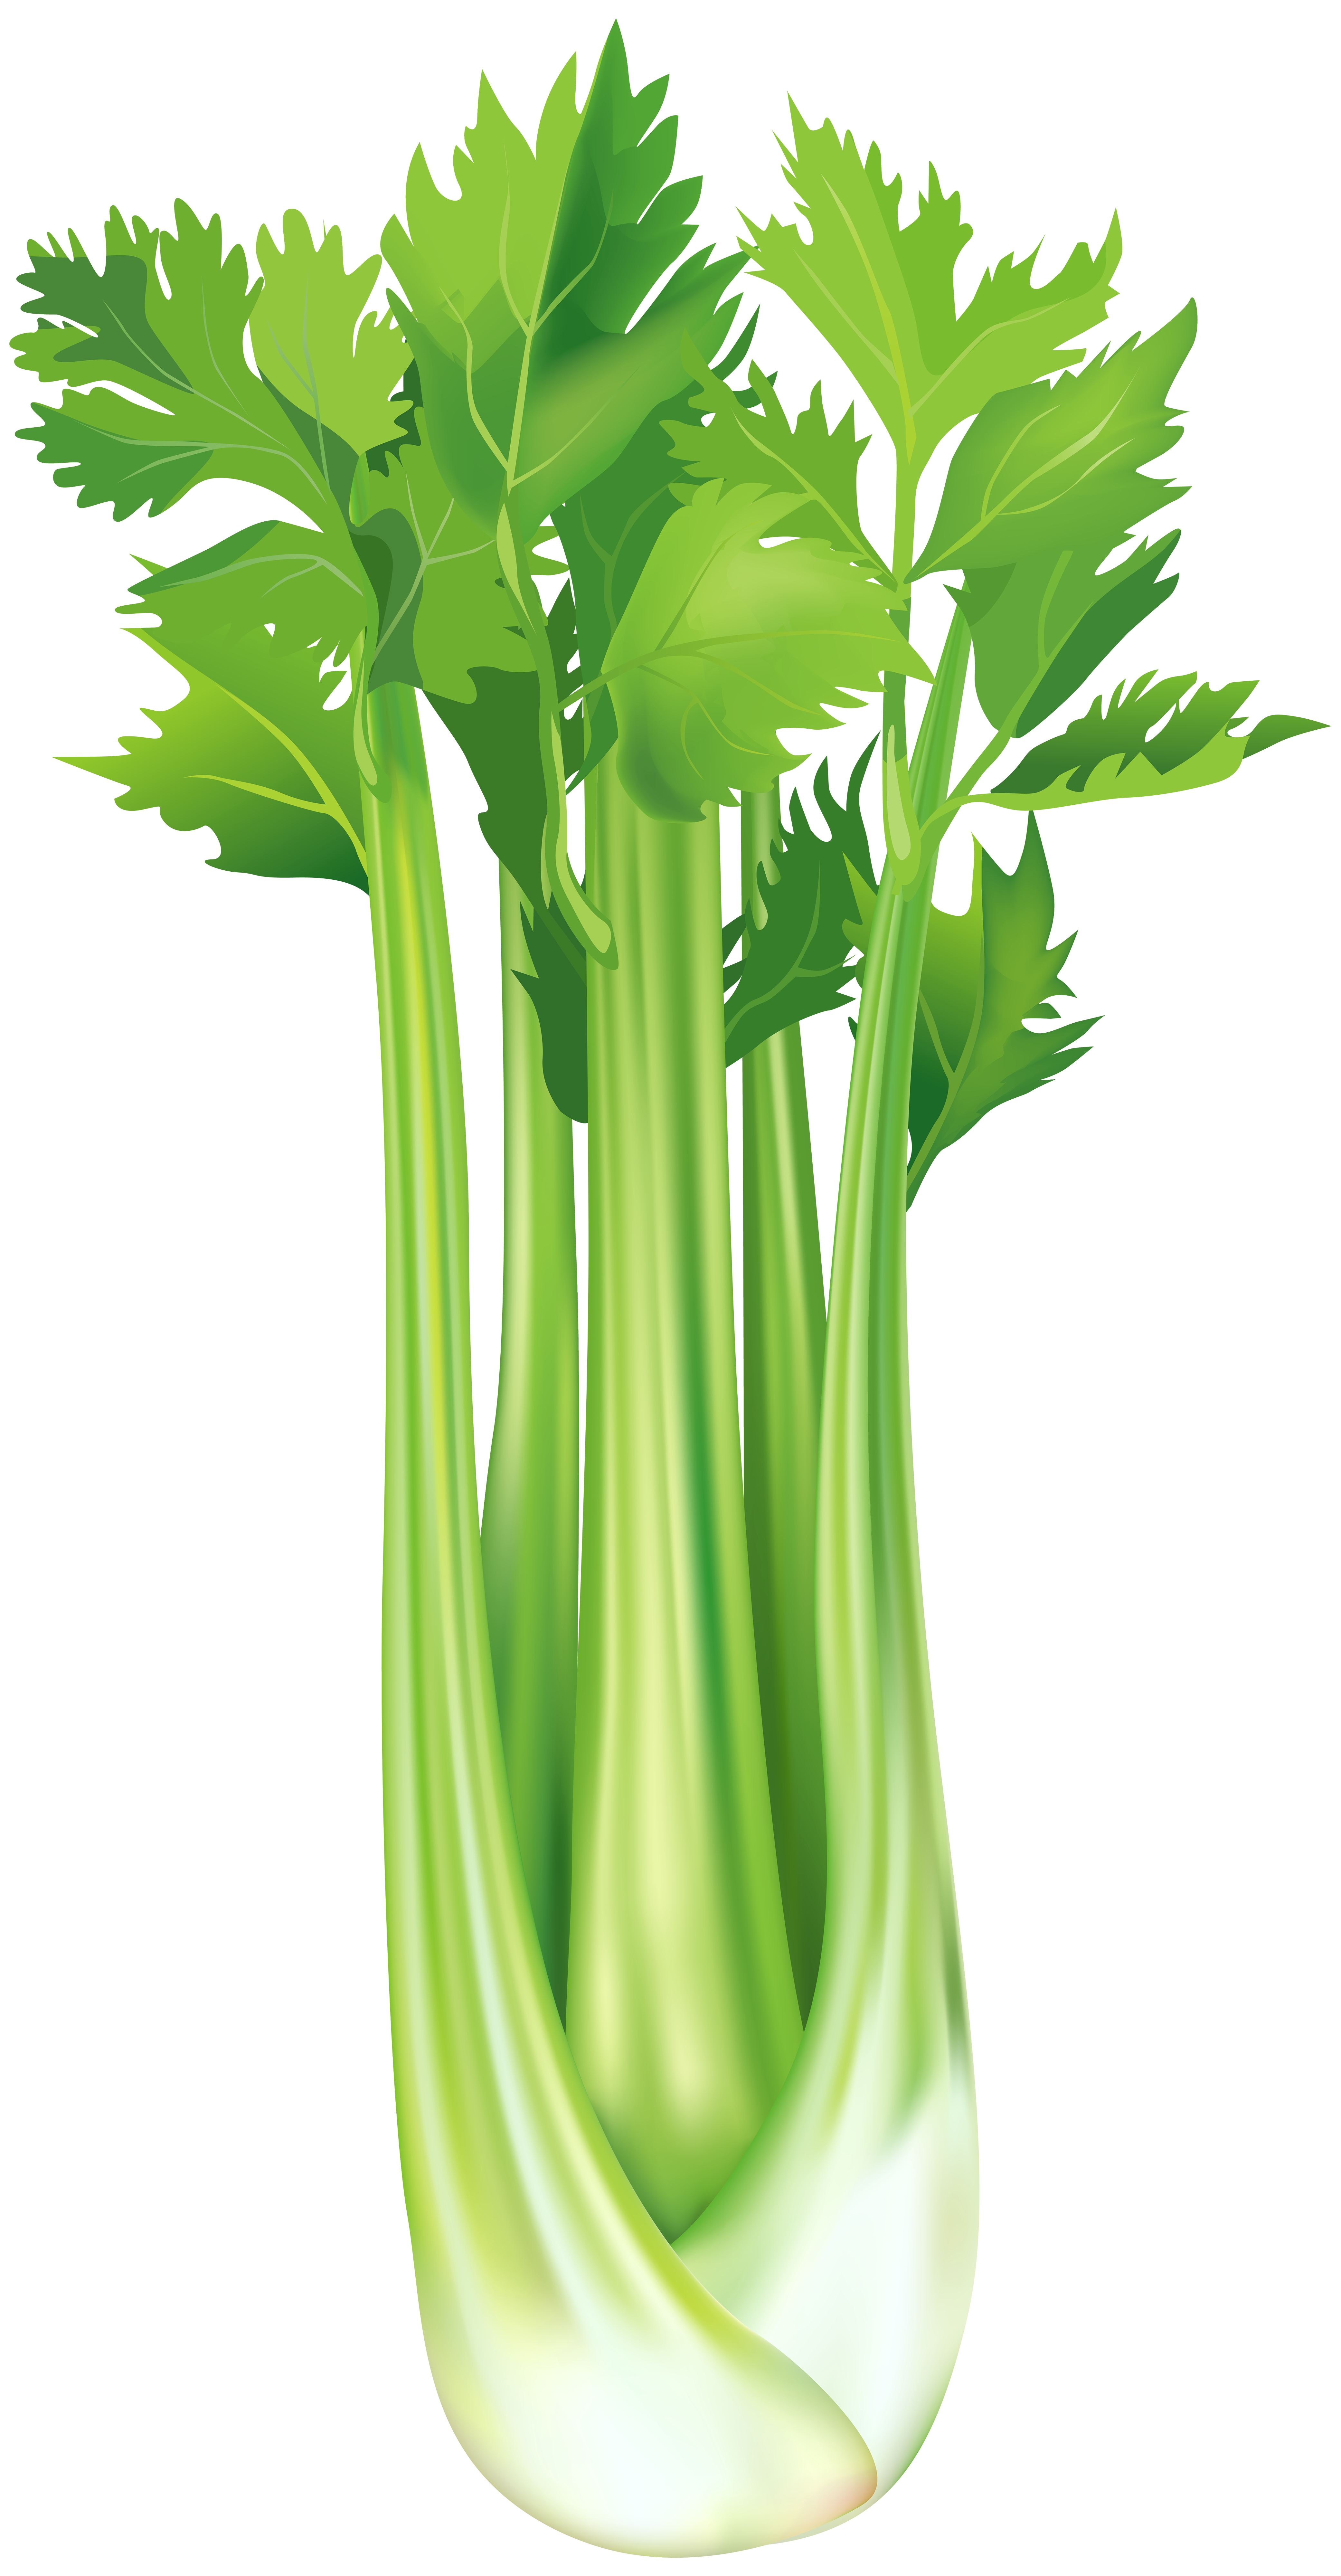 Celery clipart. Free png clip art